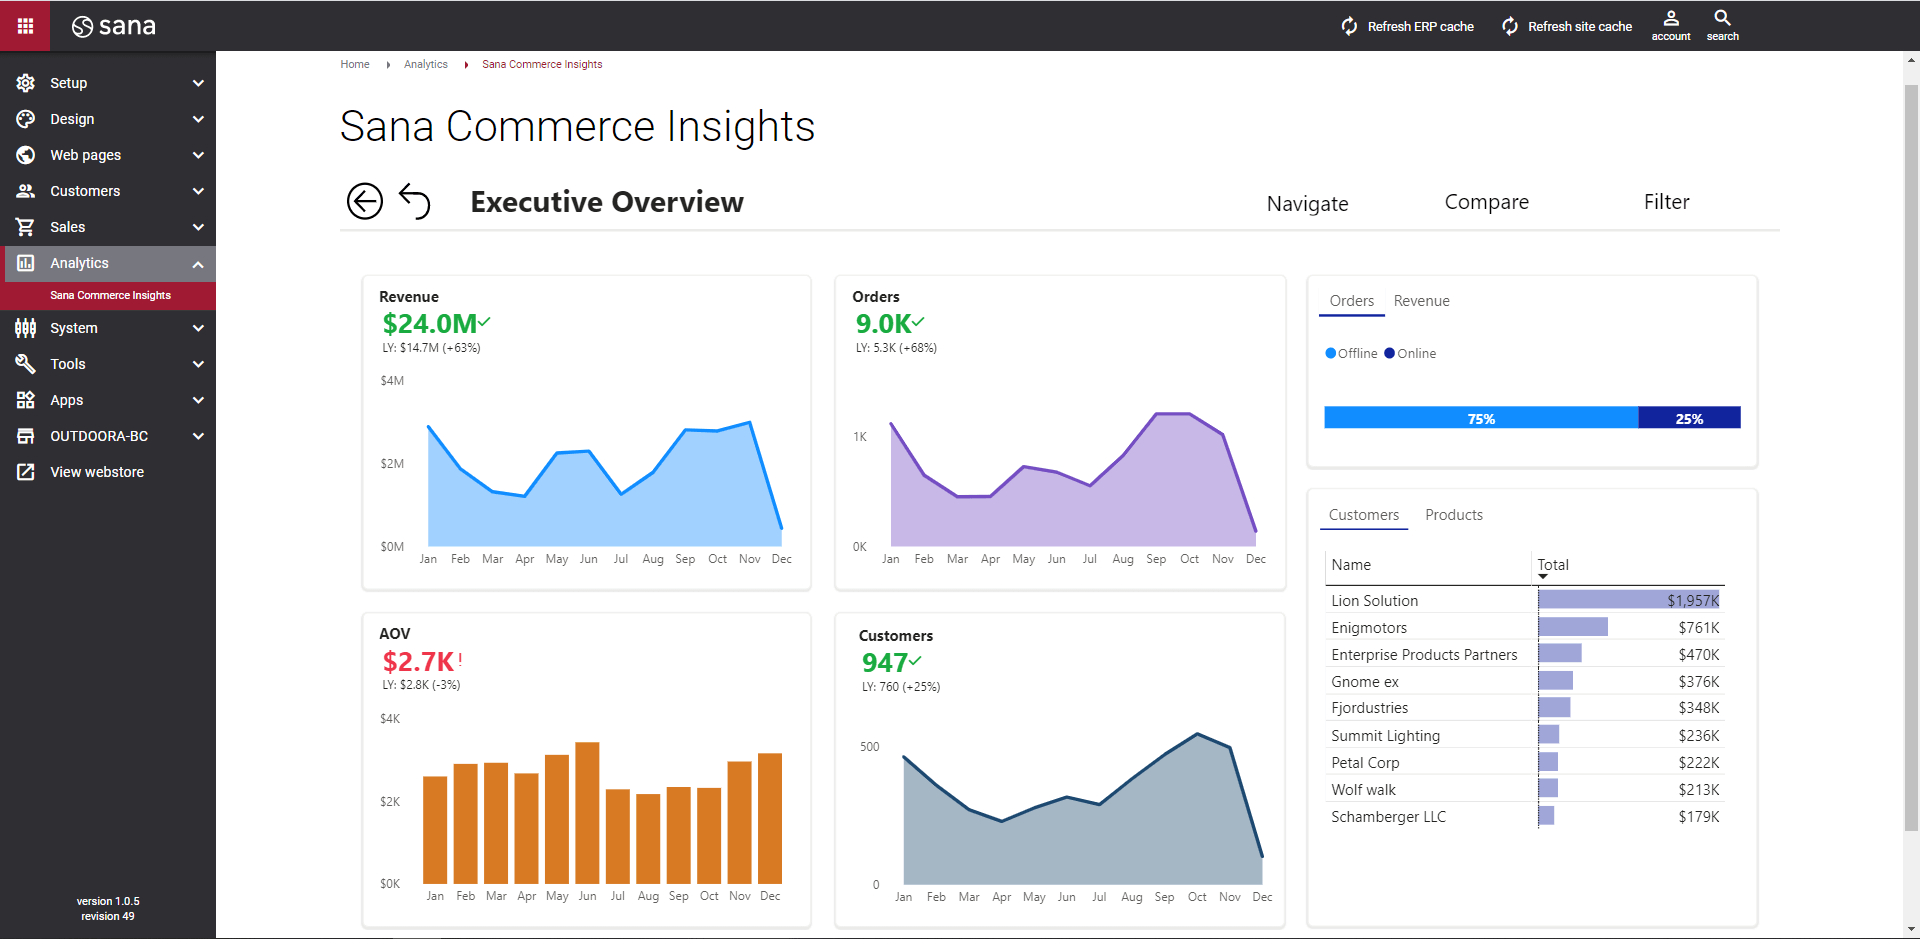 Commercial data insights available